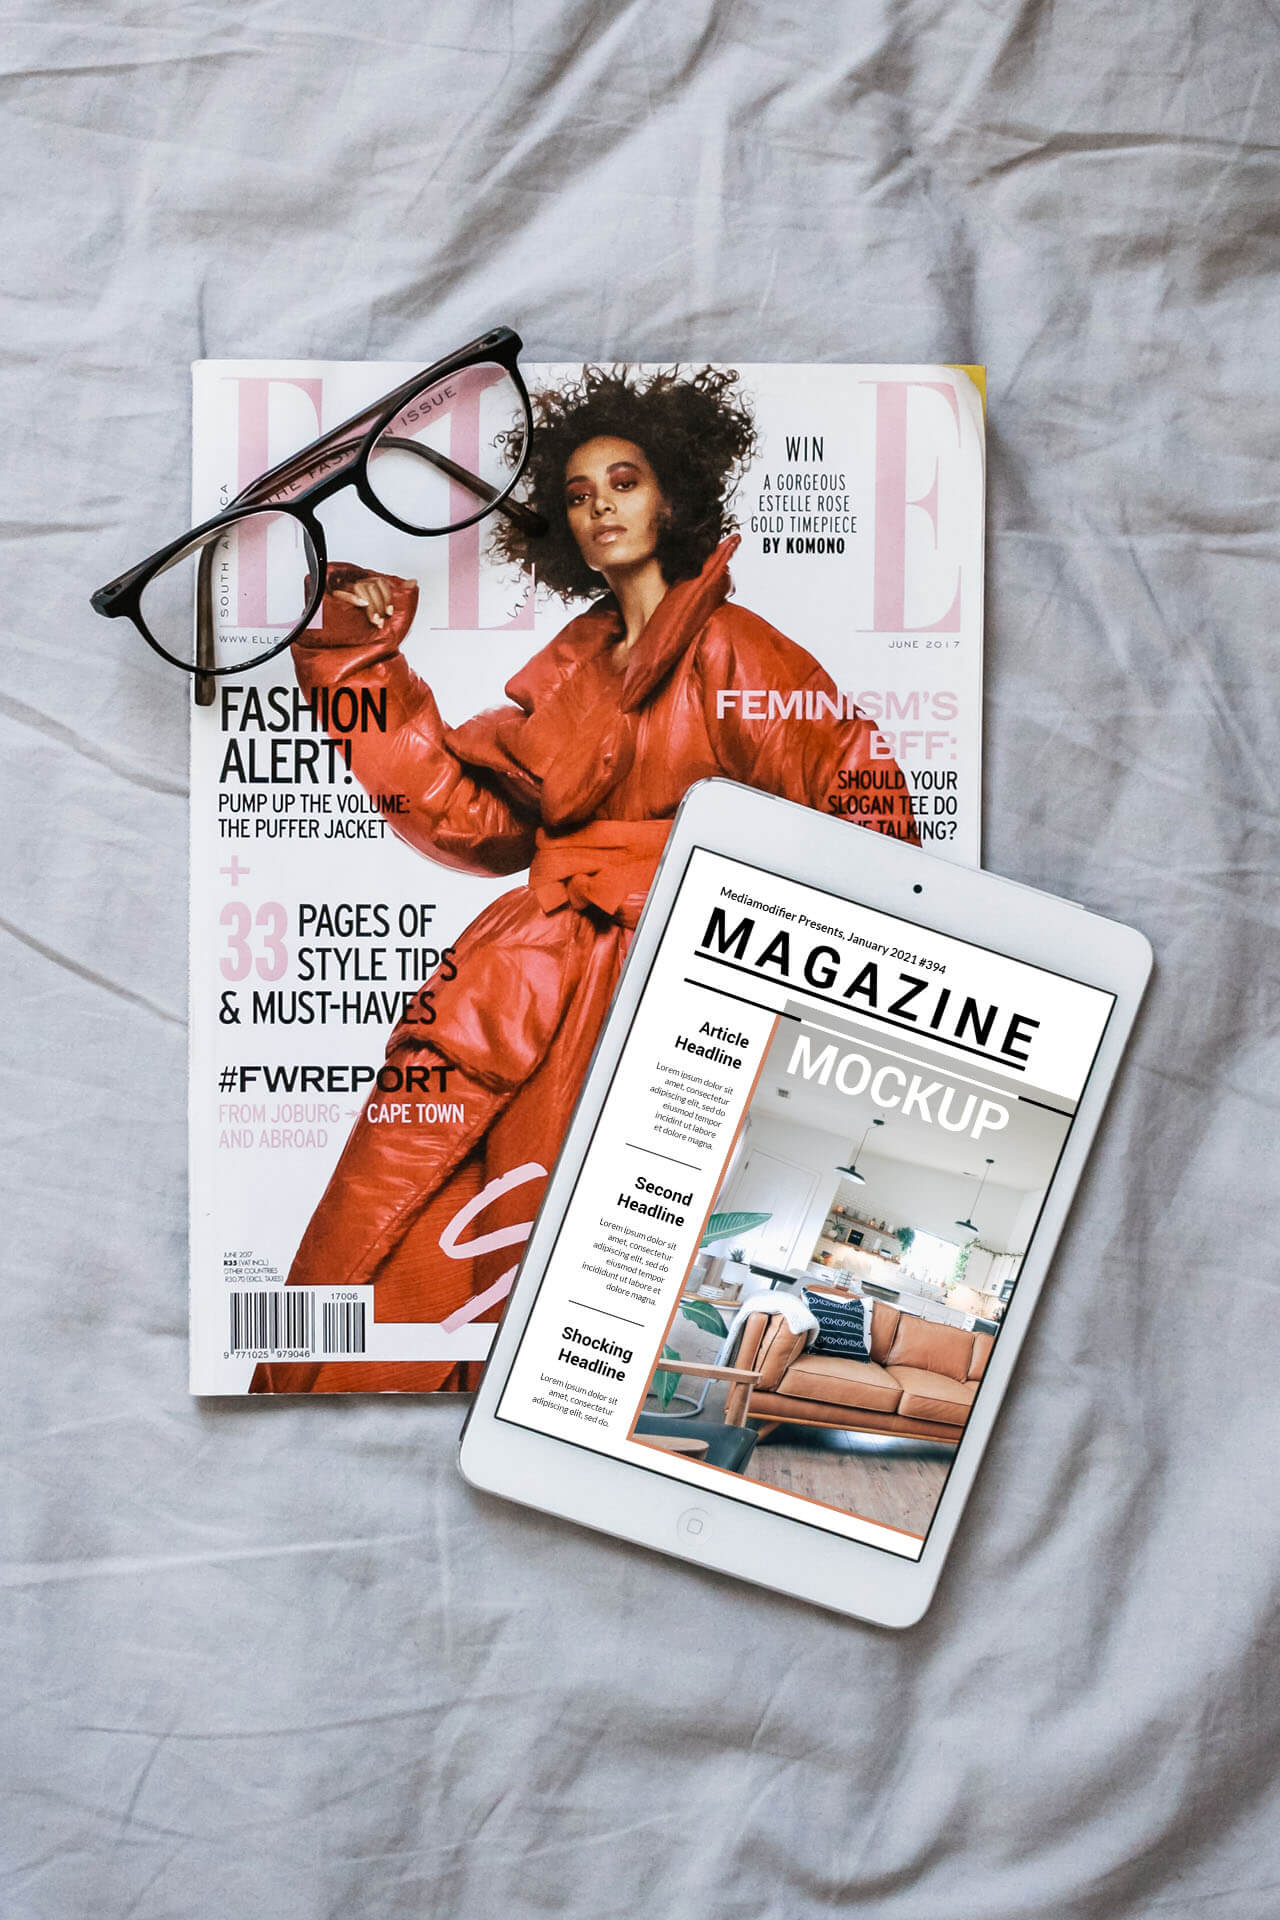 Diseño de revistas: 28-digital-ipad-online-magazine-cover-mockup